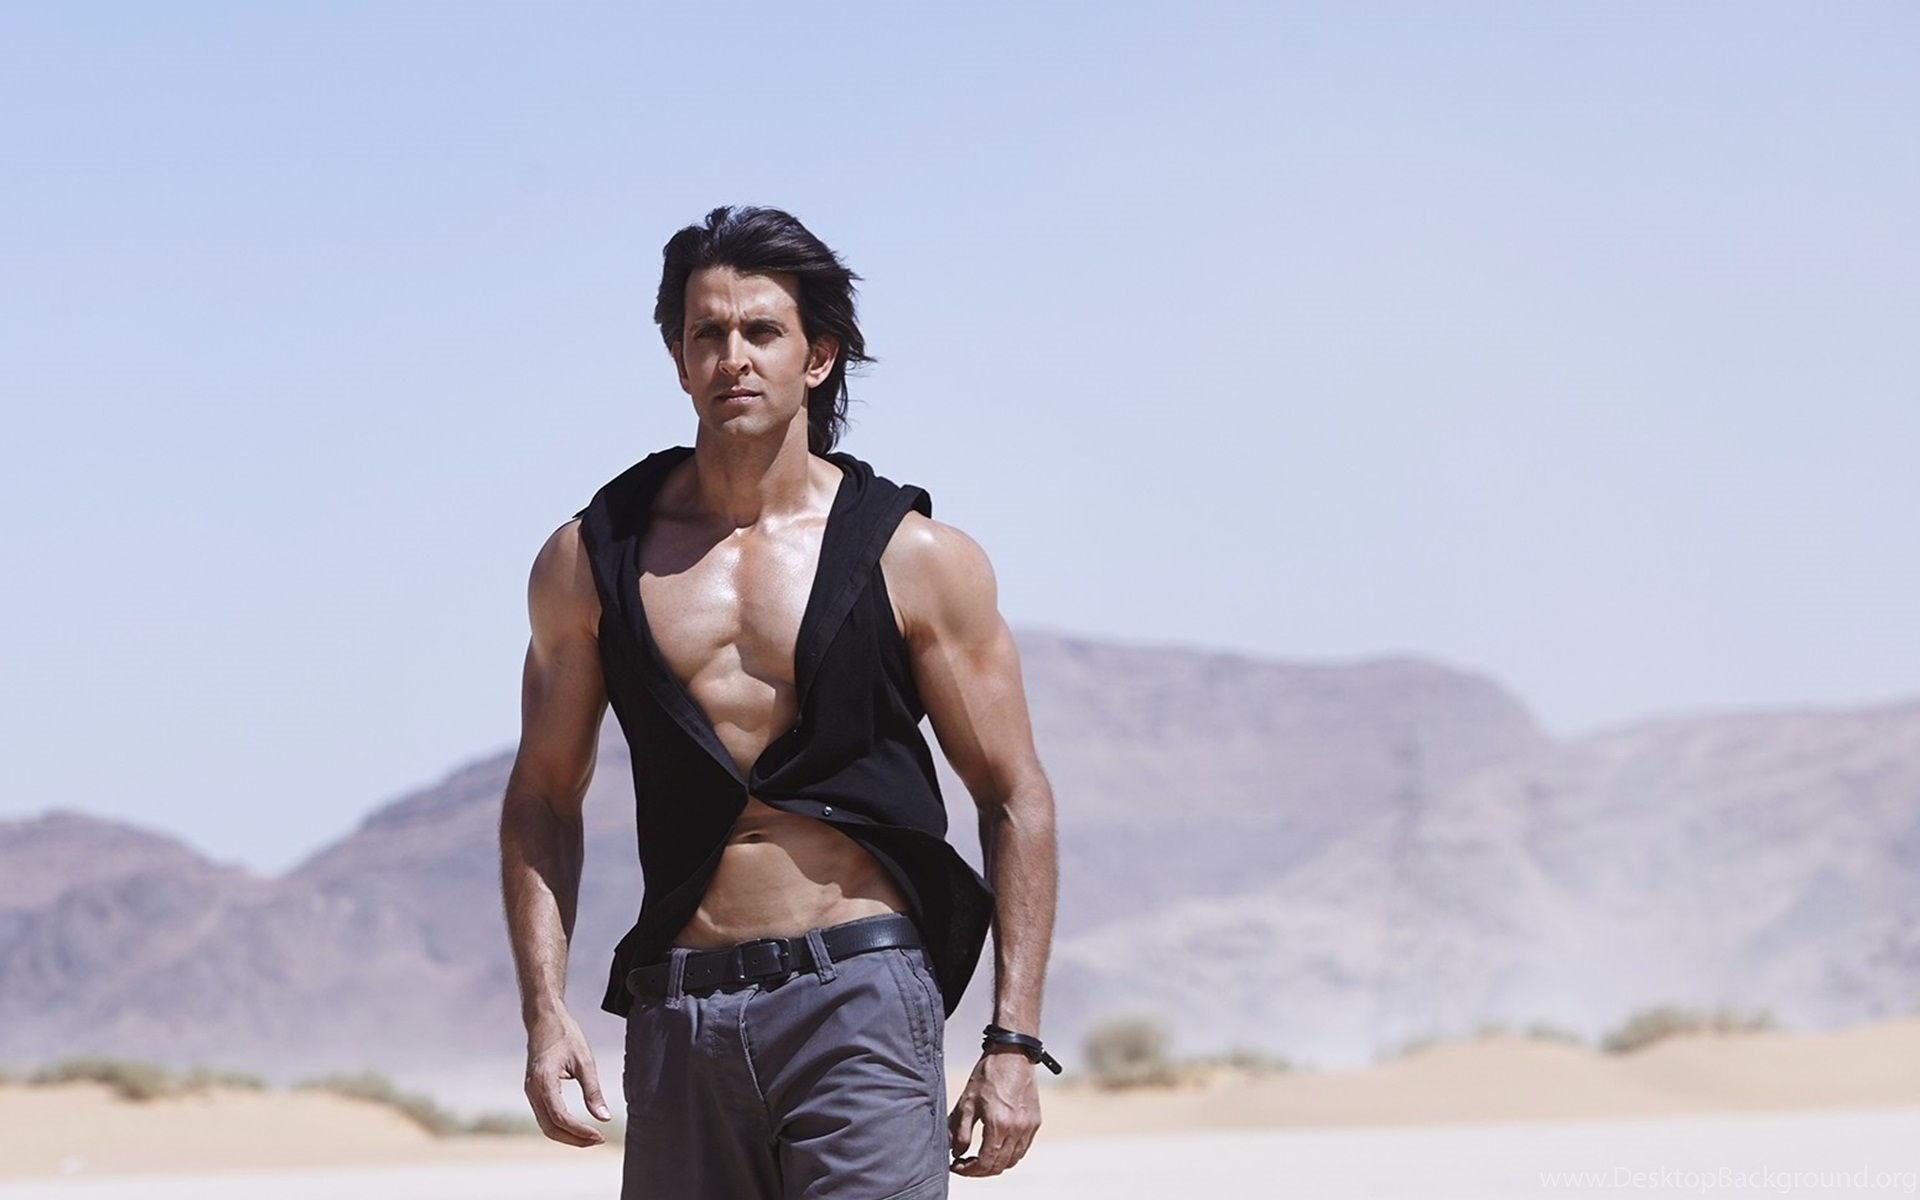 hrithik roshan body cool wallpaper hd krrish 3 desktop background